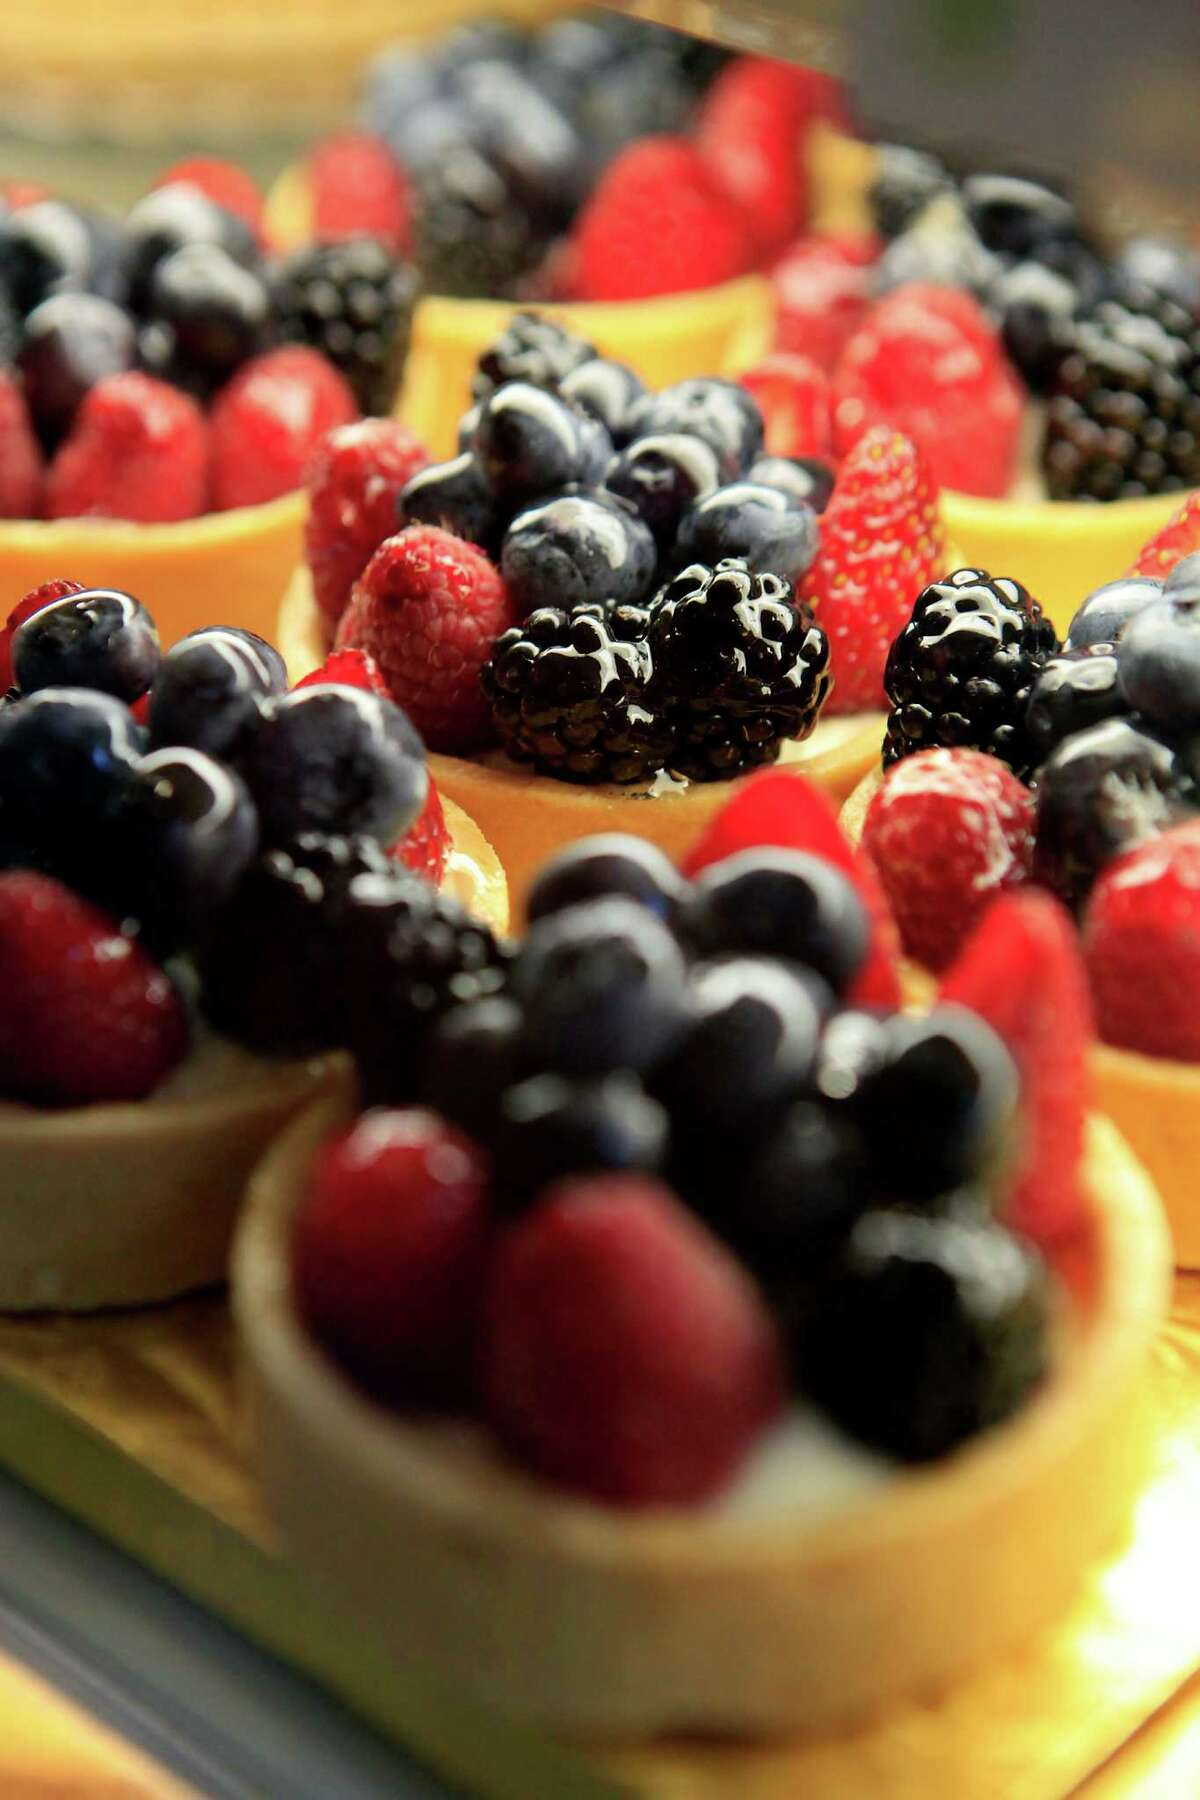 Fresh berry tarts are seen on display at Noe Valley Bakery in San Francisco, CA, Friday, August 8, 2014.